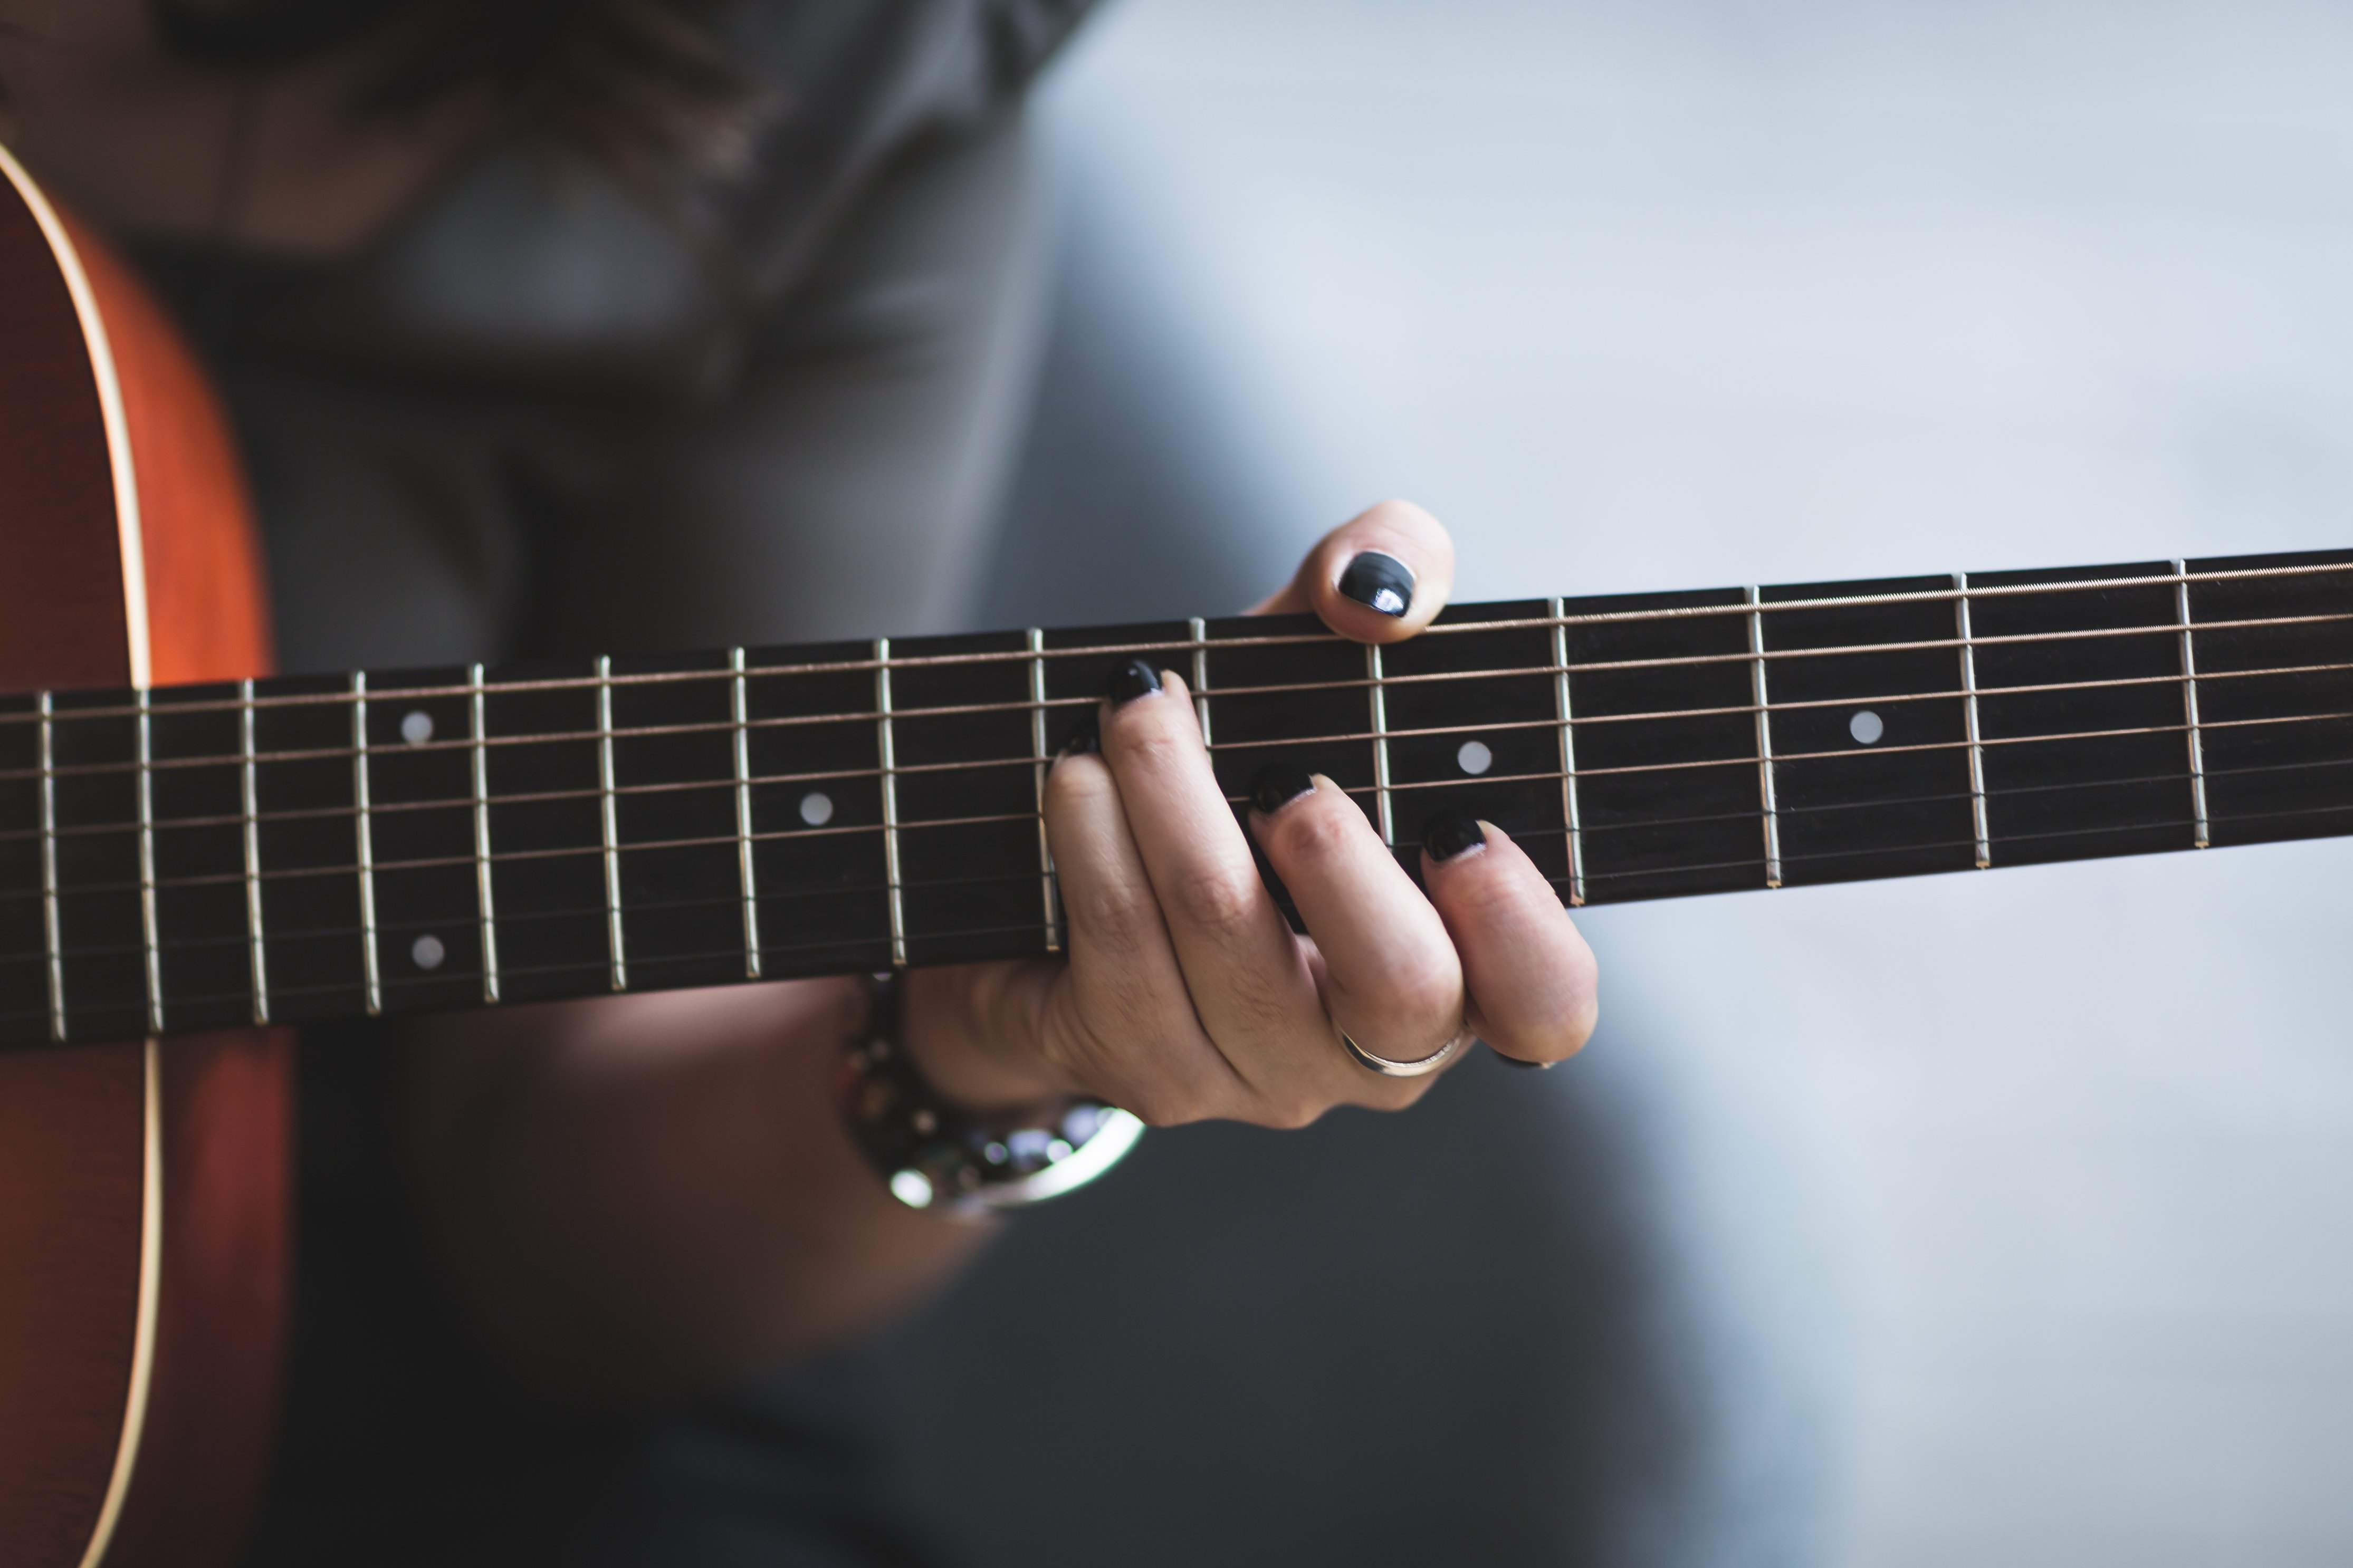 person with painted black nails plays guitar.jpg